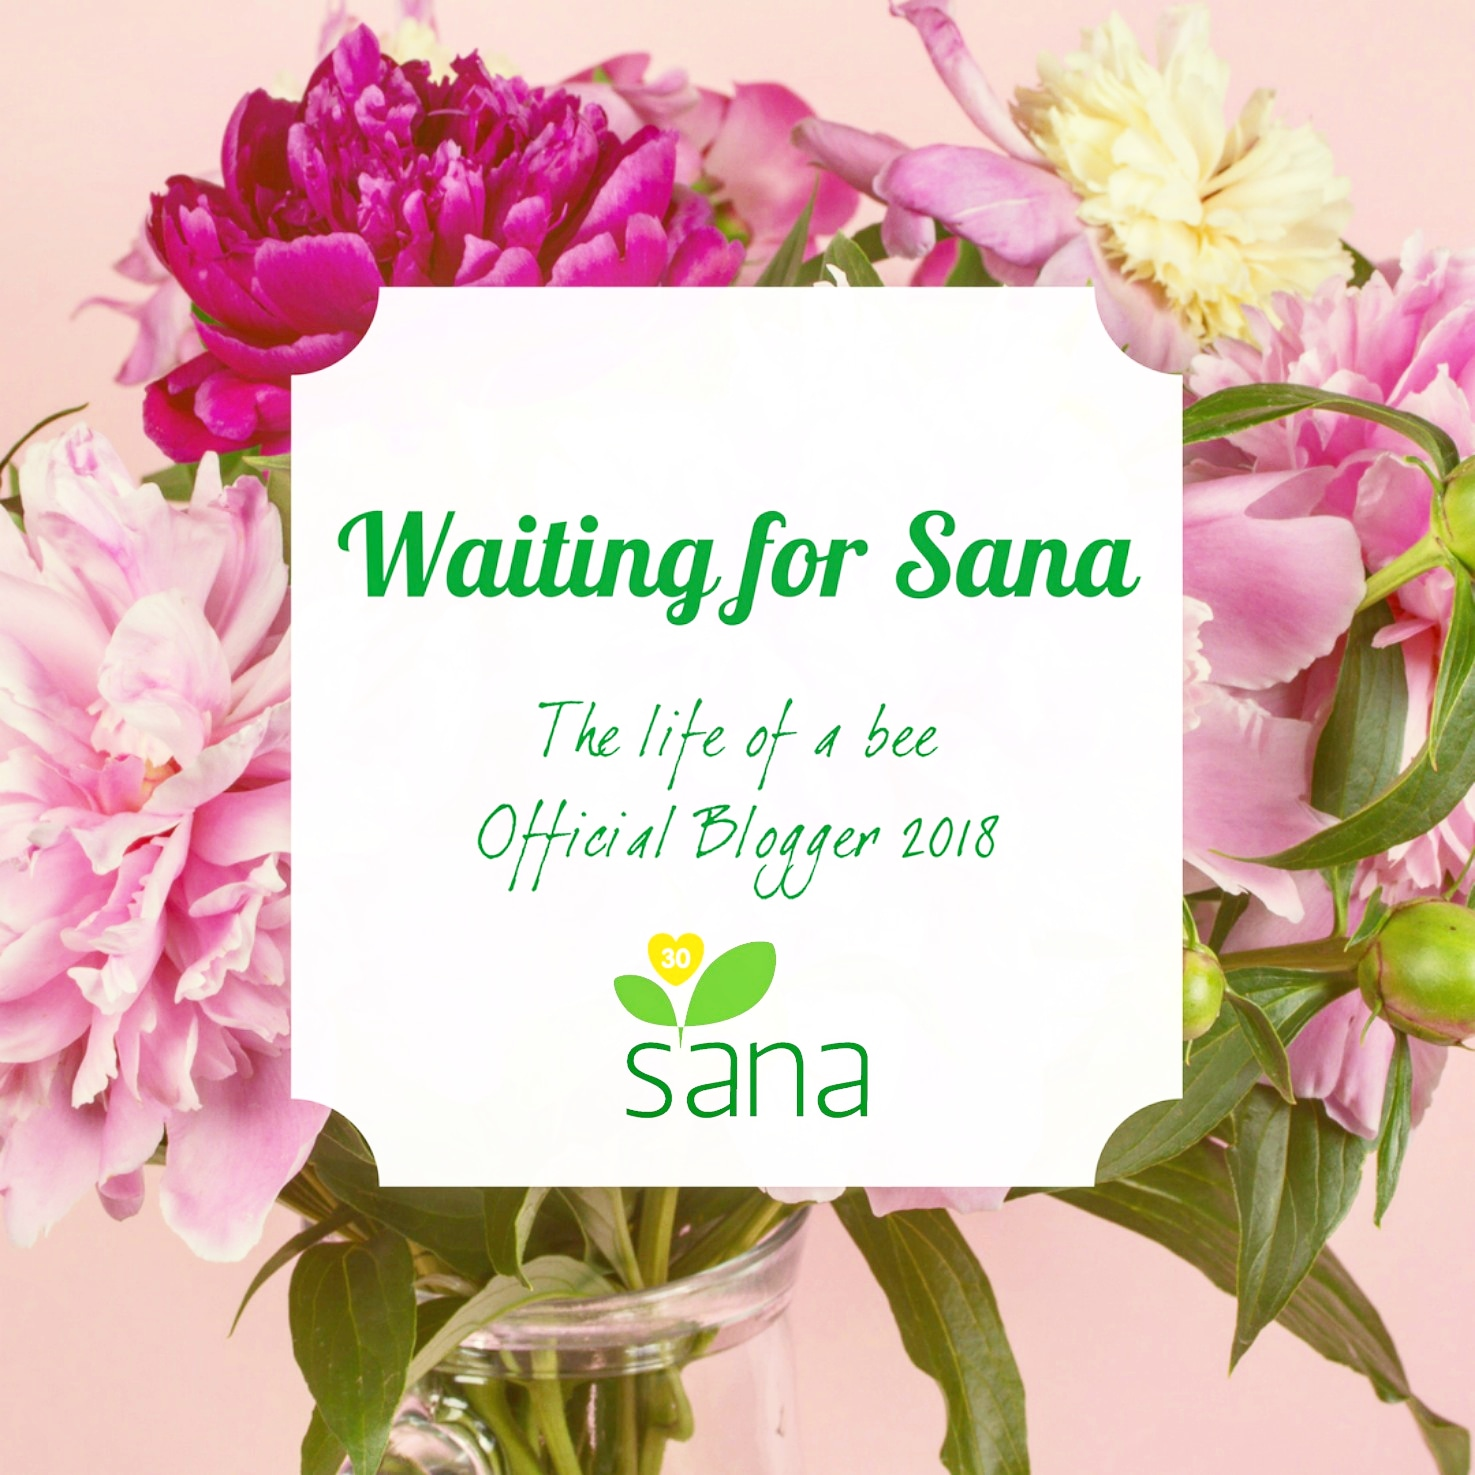 WAITING FOR SANA 2018